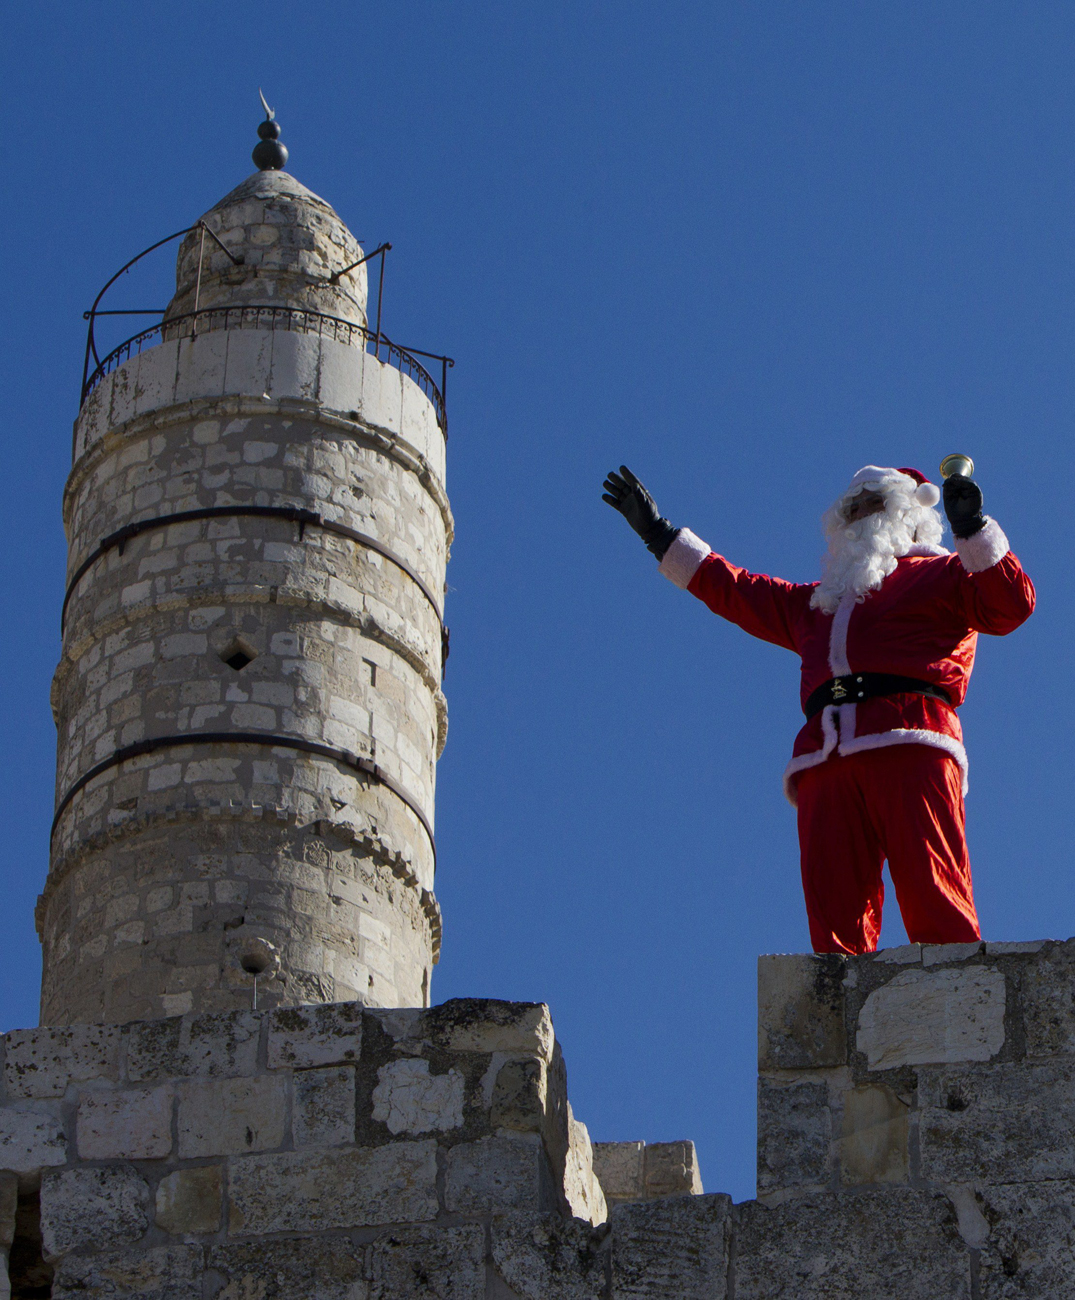 Palestinian Santa in the Old City of Jerusalem (Photo: EPA) (צילום: AFP)